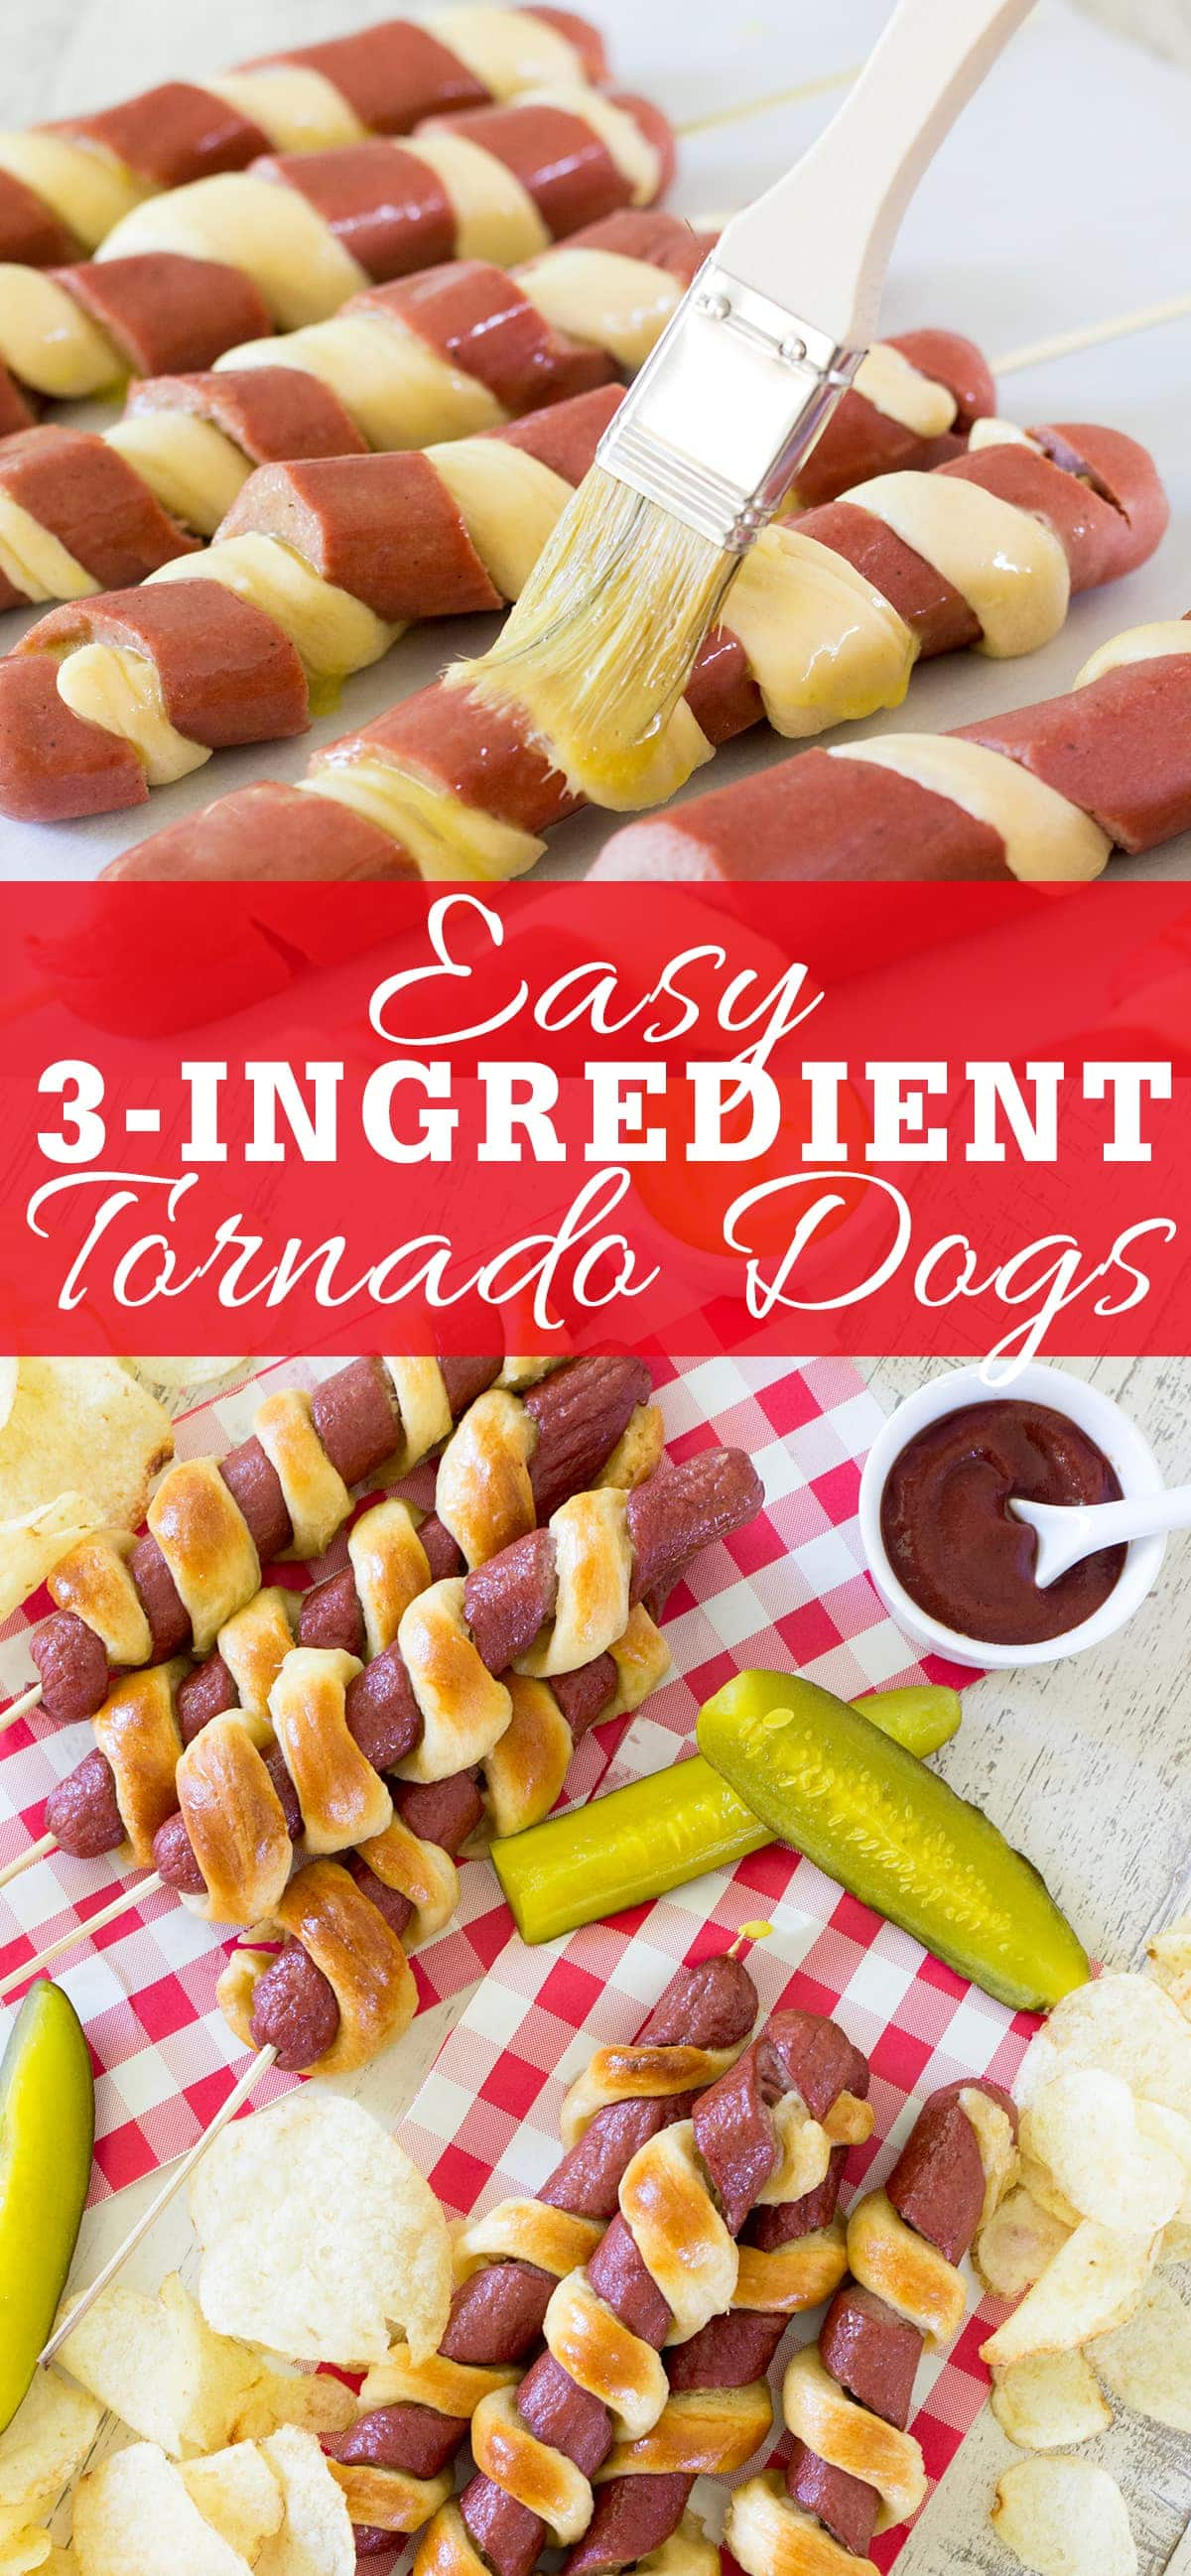 Easy 3-Ingredient Tornado Hot Dogs, spiral cut hot dogs wrapped in crescent roll dough, are an easy and fun way to prepare hot dogs for the 4th of July or anytime of year!